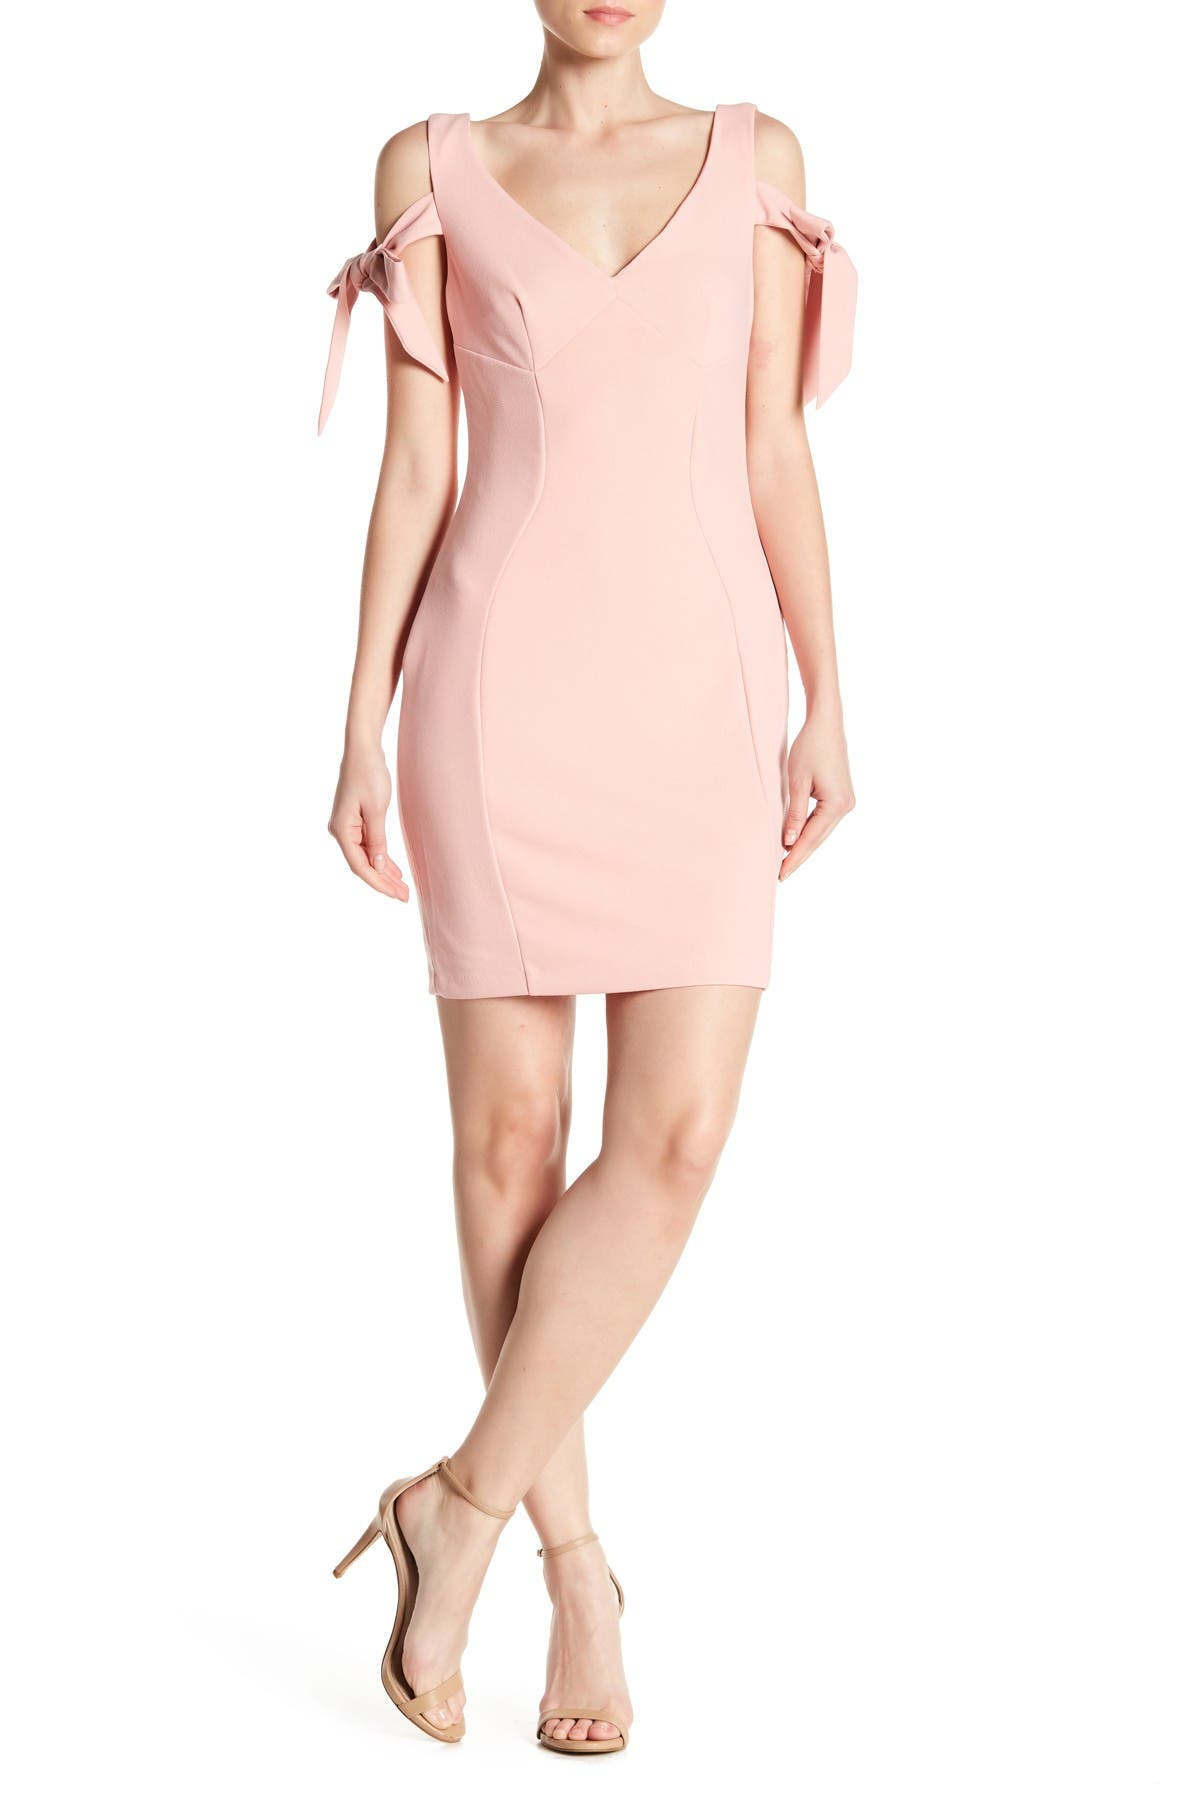 Image of Alexia Admor Tie Sleeve Bodycon Dress